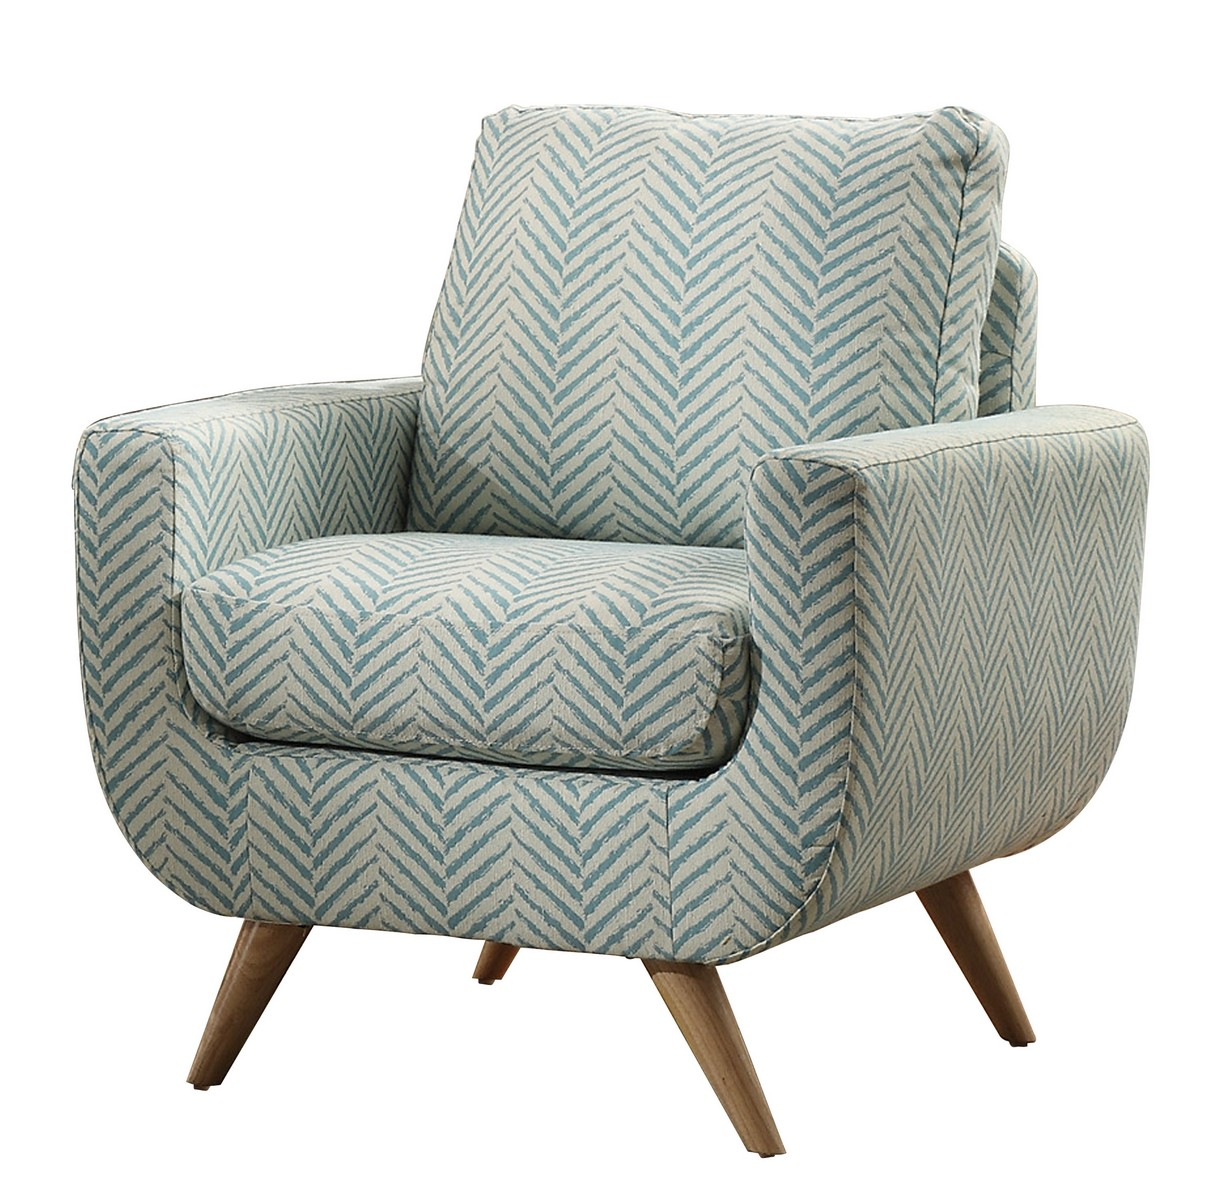 Teal Chair Homelegance Deryn Accent Chair Polyester Teal 8327tl